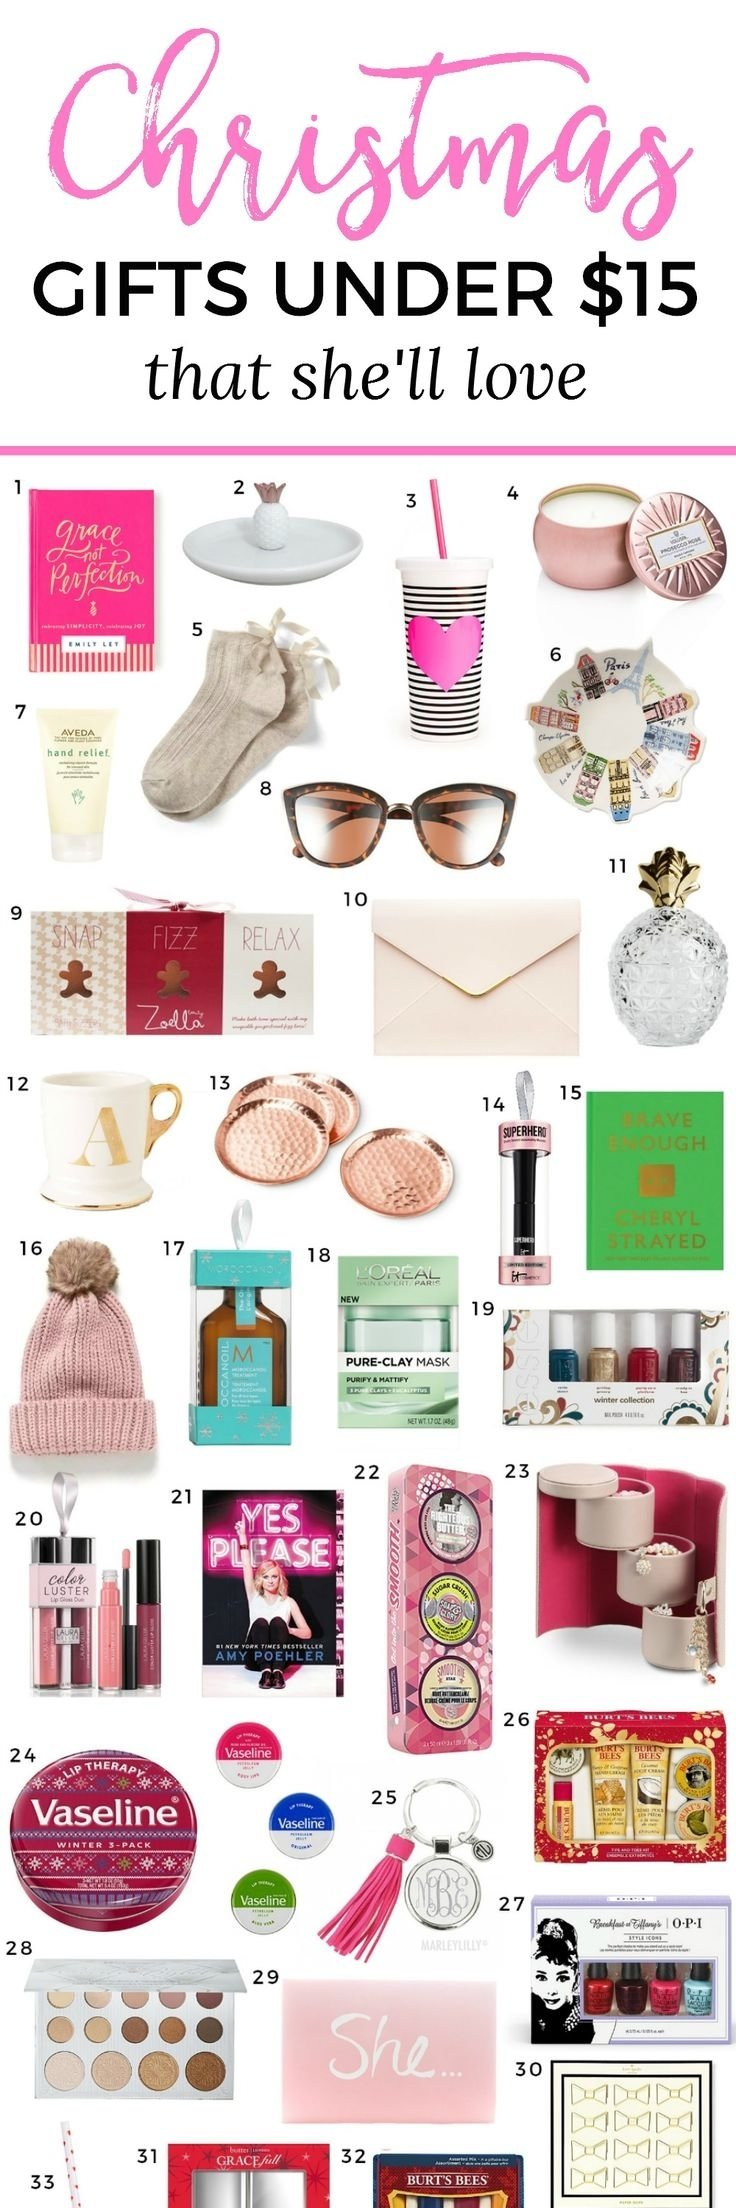 10 Perfect 22Nd Birthday Gift Ideas For Her les 22 meilleures images du tableau gift ideas sur pinterest 2021